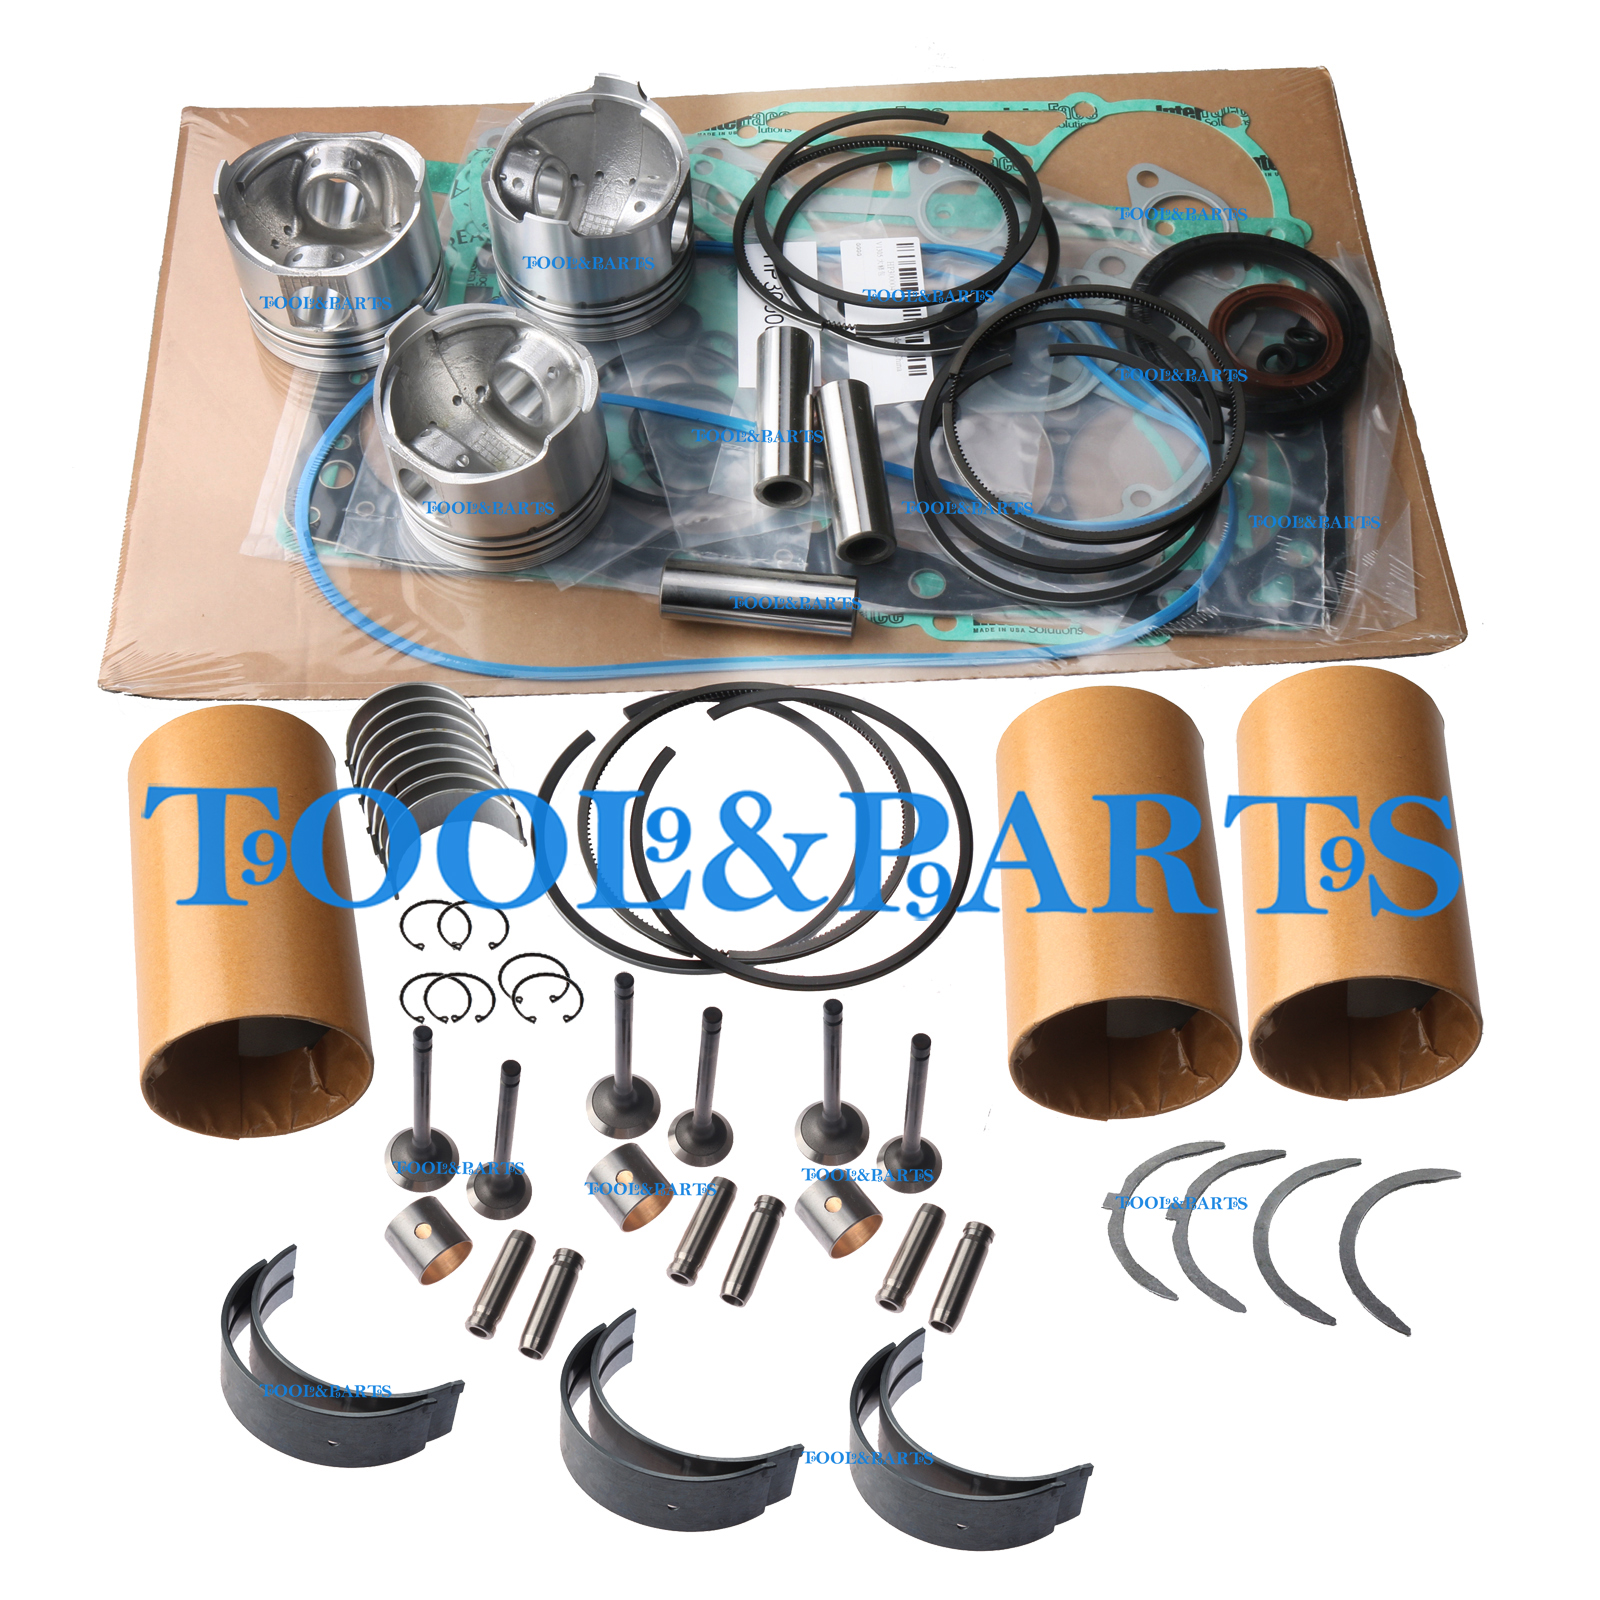 3TNA72 3TNA72L Overhaul Rebuild Kit for Yanmar Engine Kobelco SK15SR Excavator